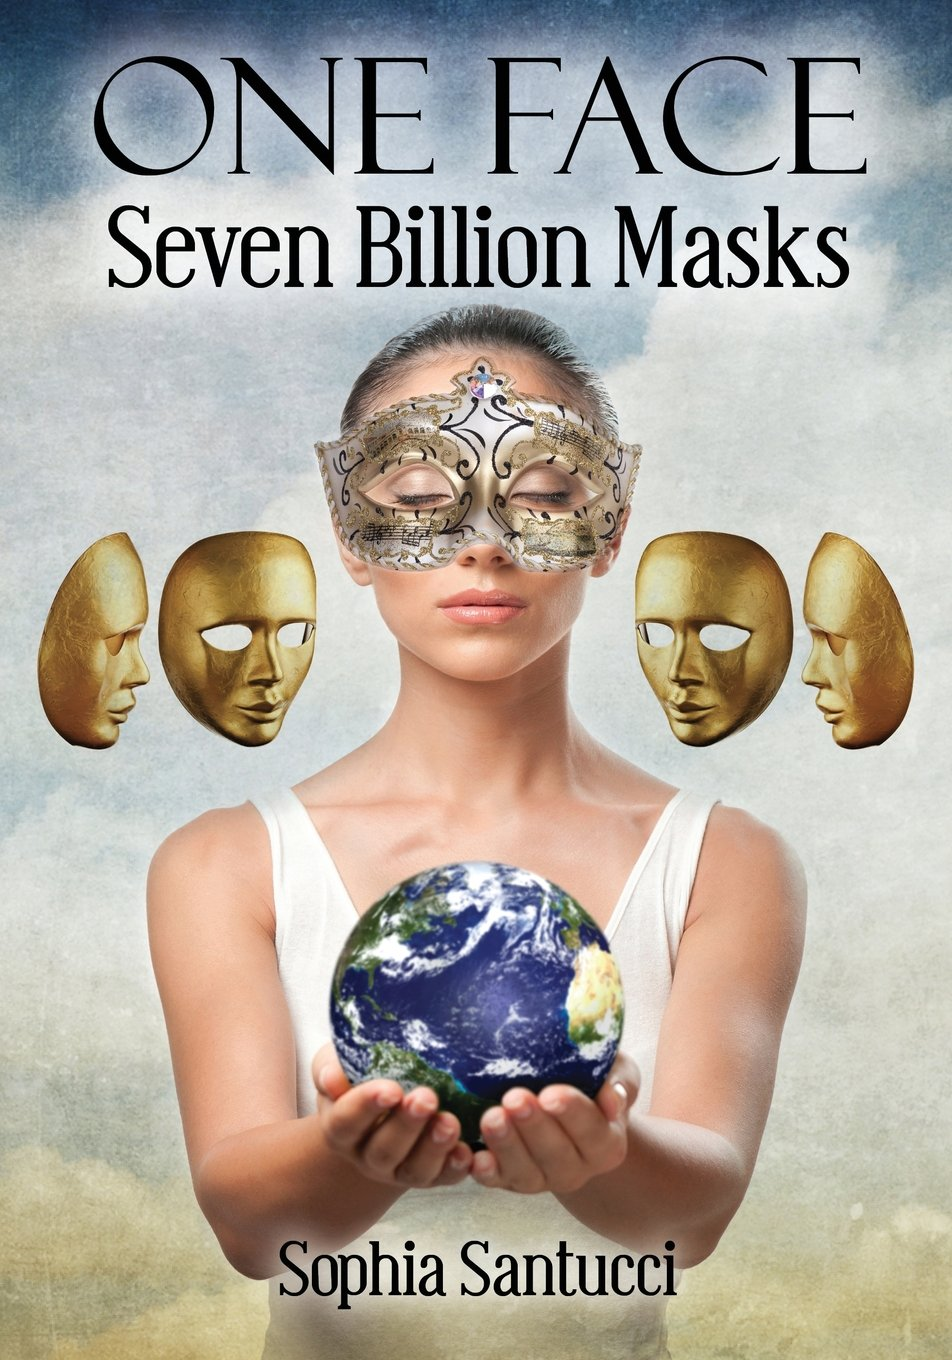 One Face Seven Billion Masks